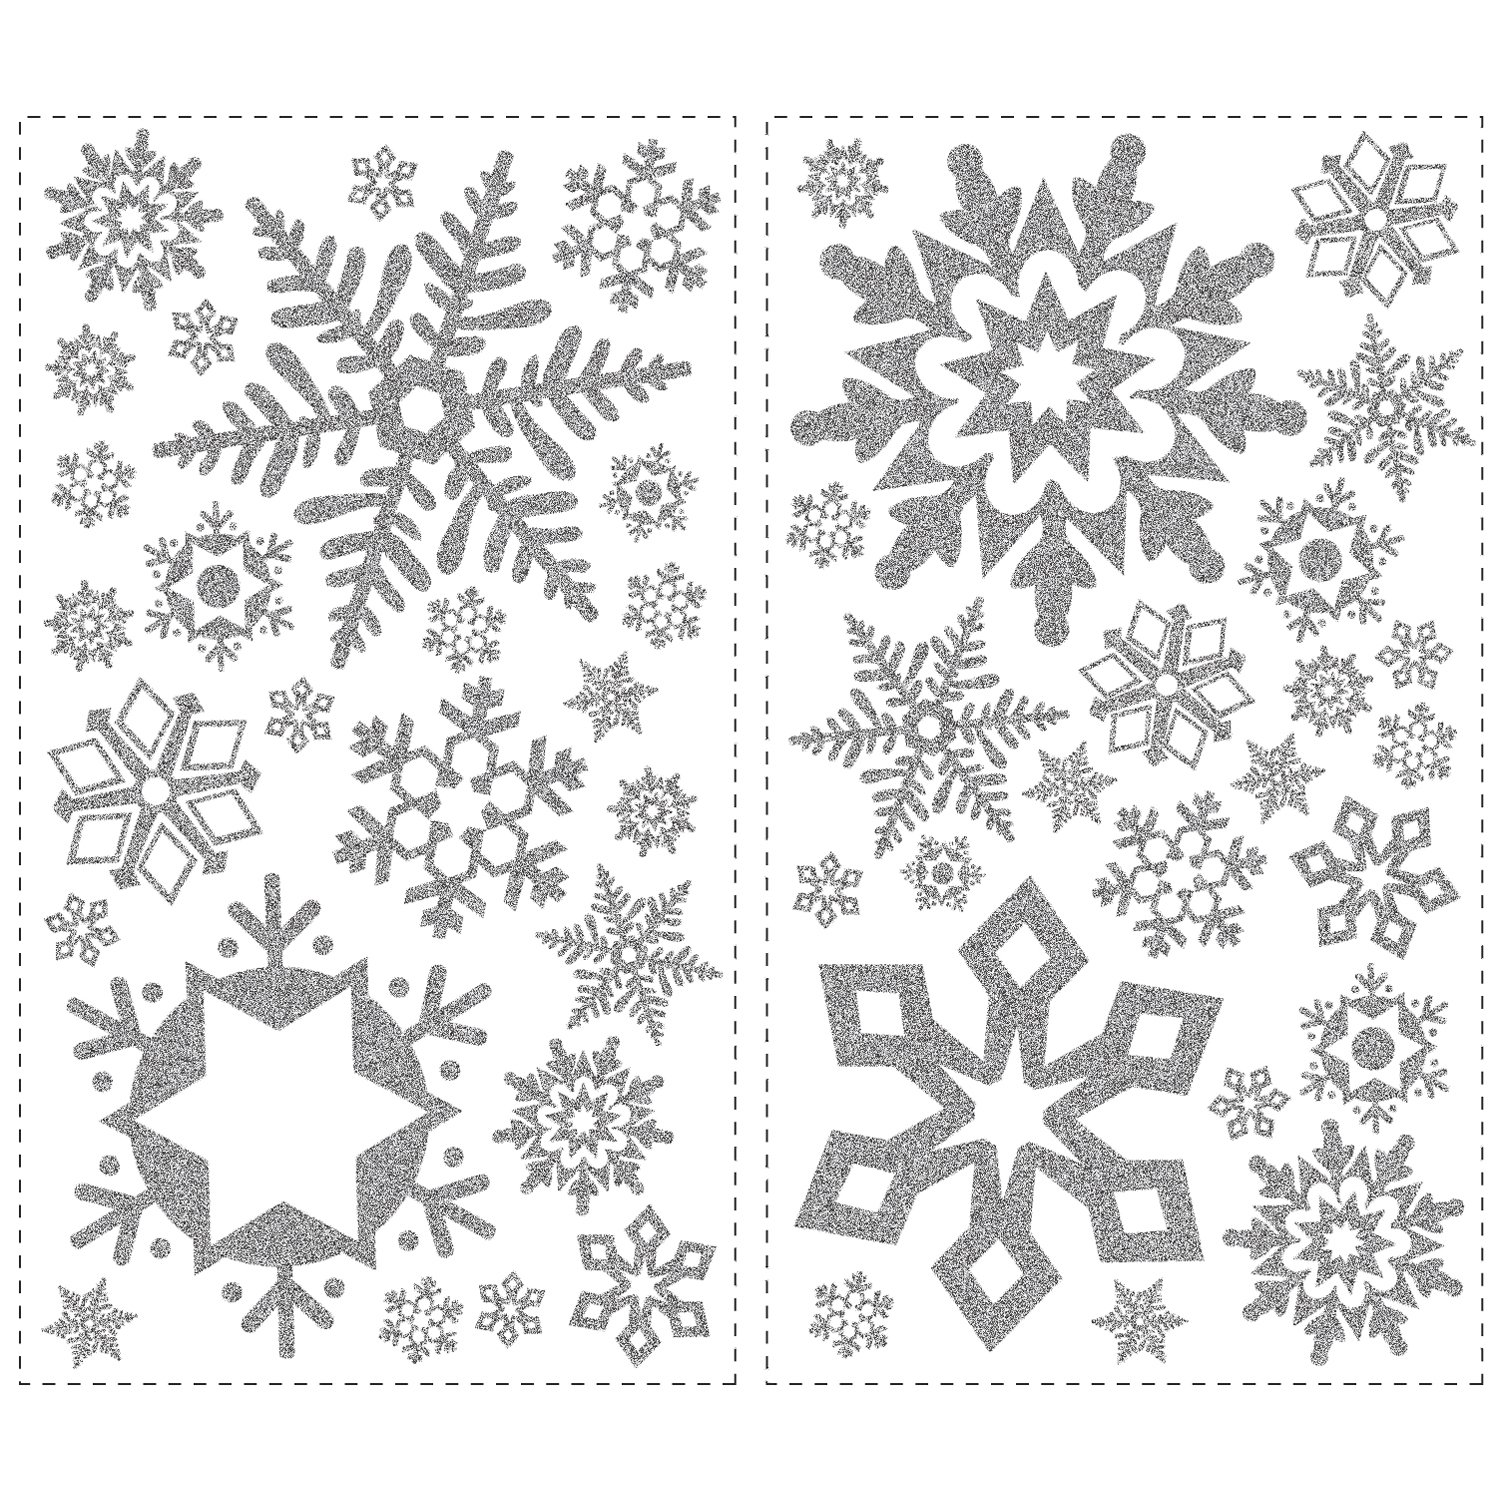 RoomMates RMK1413SCS Glitter Snowflakes Peel U0026 Stick Wall Decals, 47 Count    Decorative Wall Appliques   Amazon.com